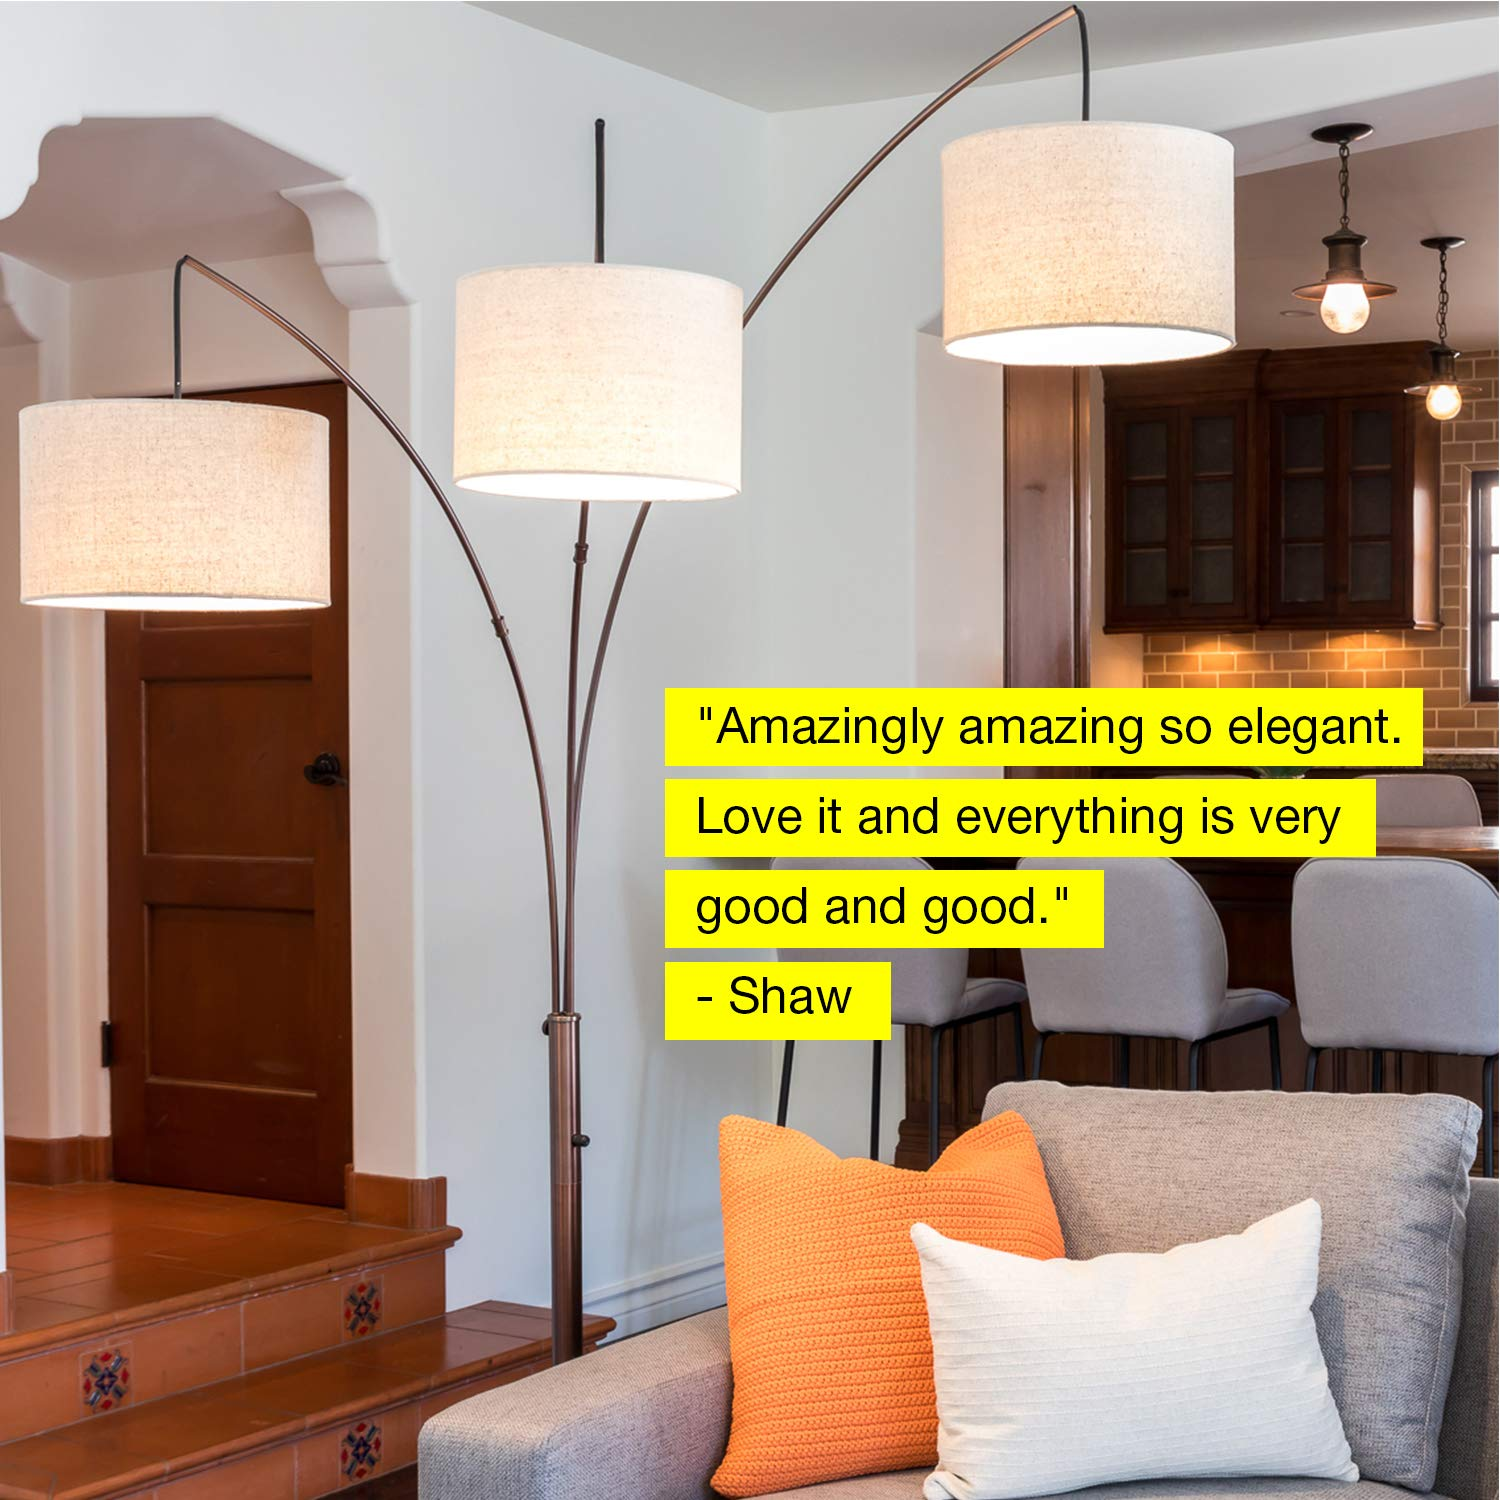 Brightech Trilage - Modern LED Arc Floor Lamp with Marble Base - Free Standing Behind The Couch Lamp for Living Room - 3 Hanging Lights, Great for Reading - Oil Rubbed Bronze by Brightech (Image #6)